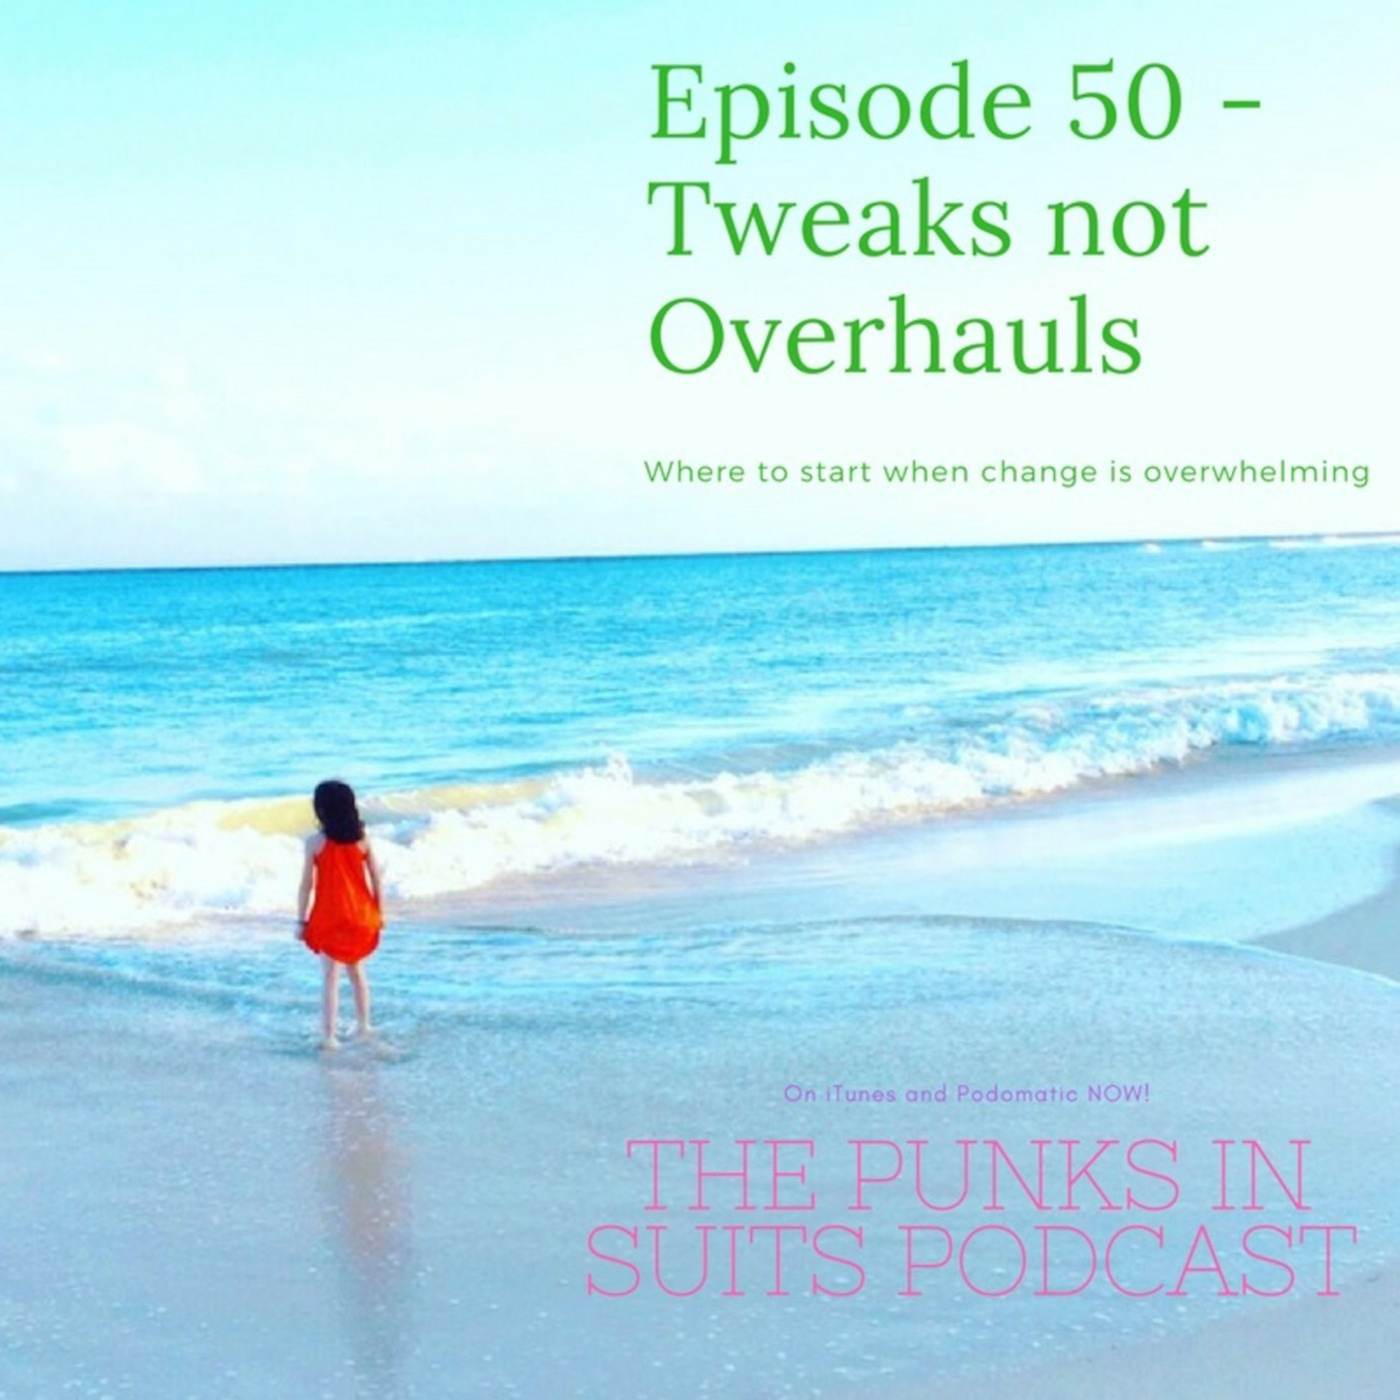 Episode 50: Tweaks not Overhauls